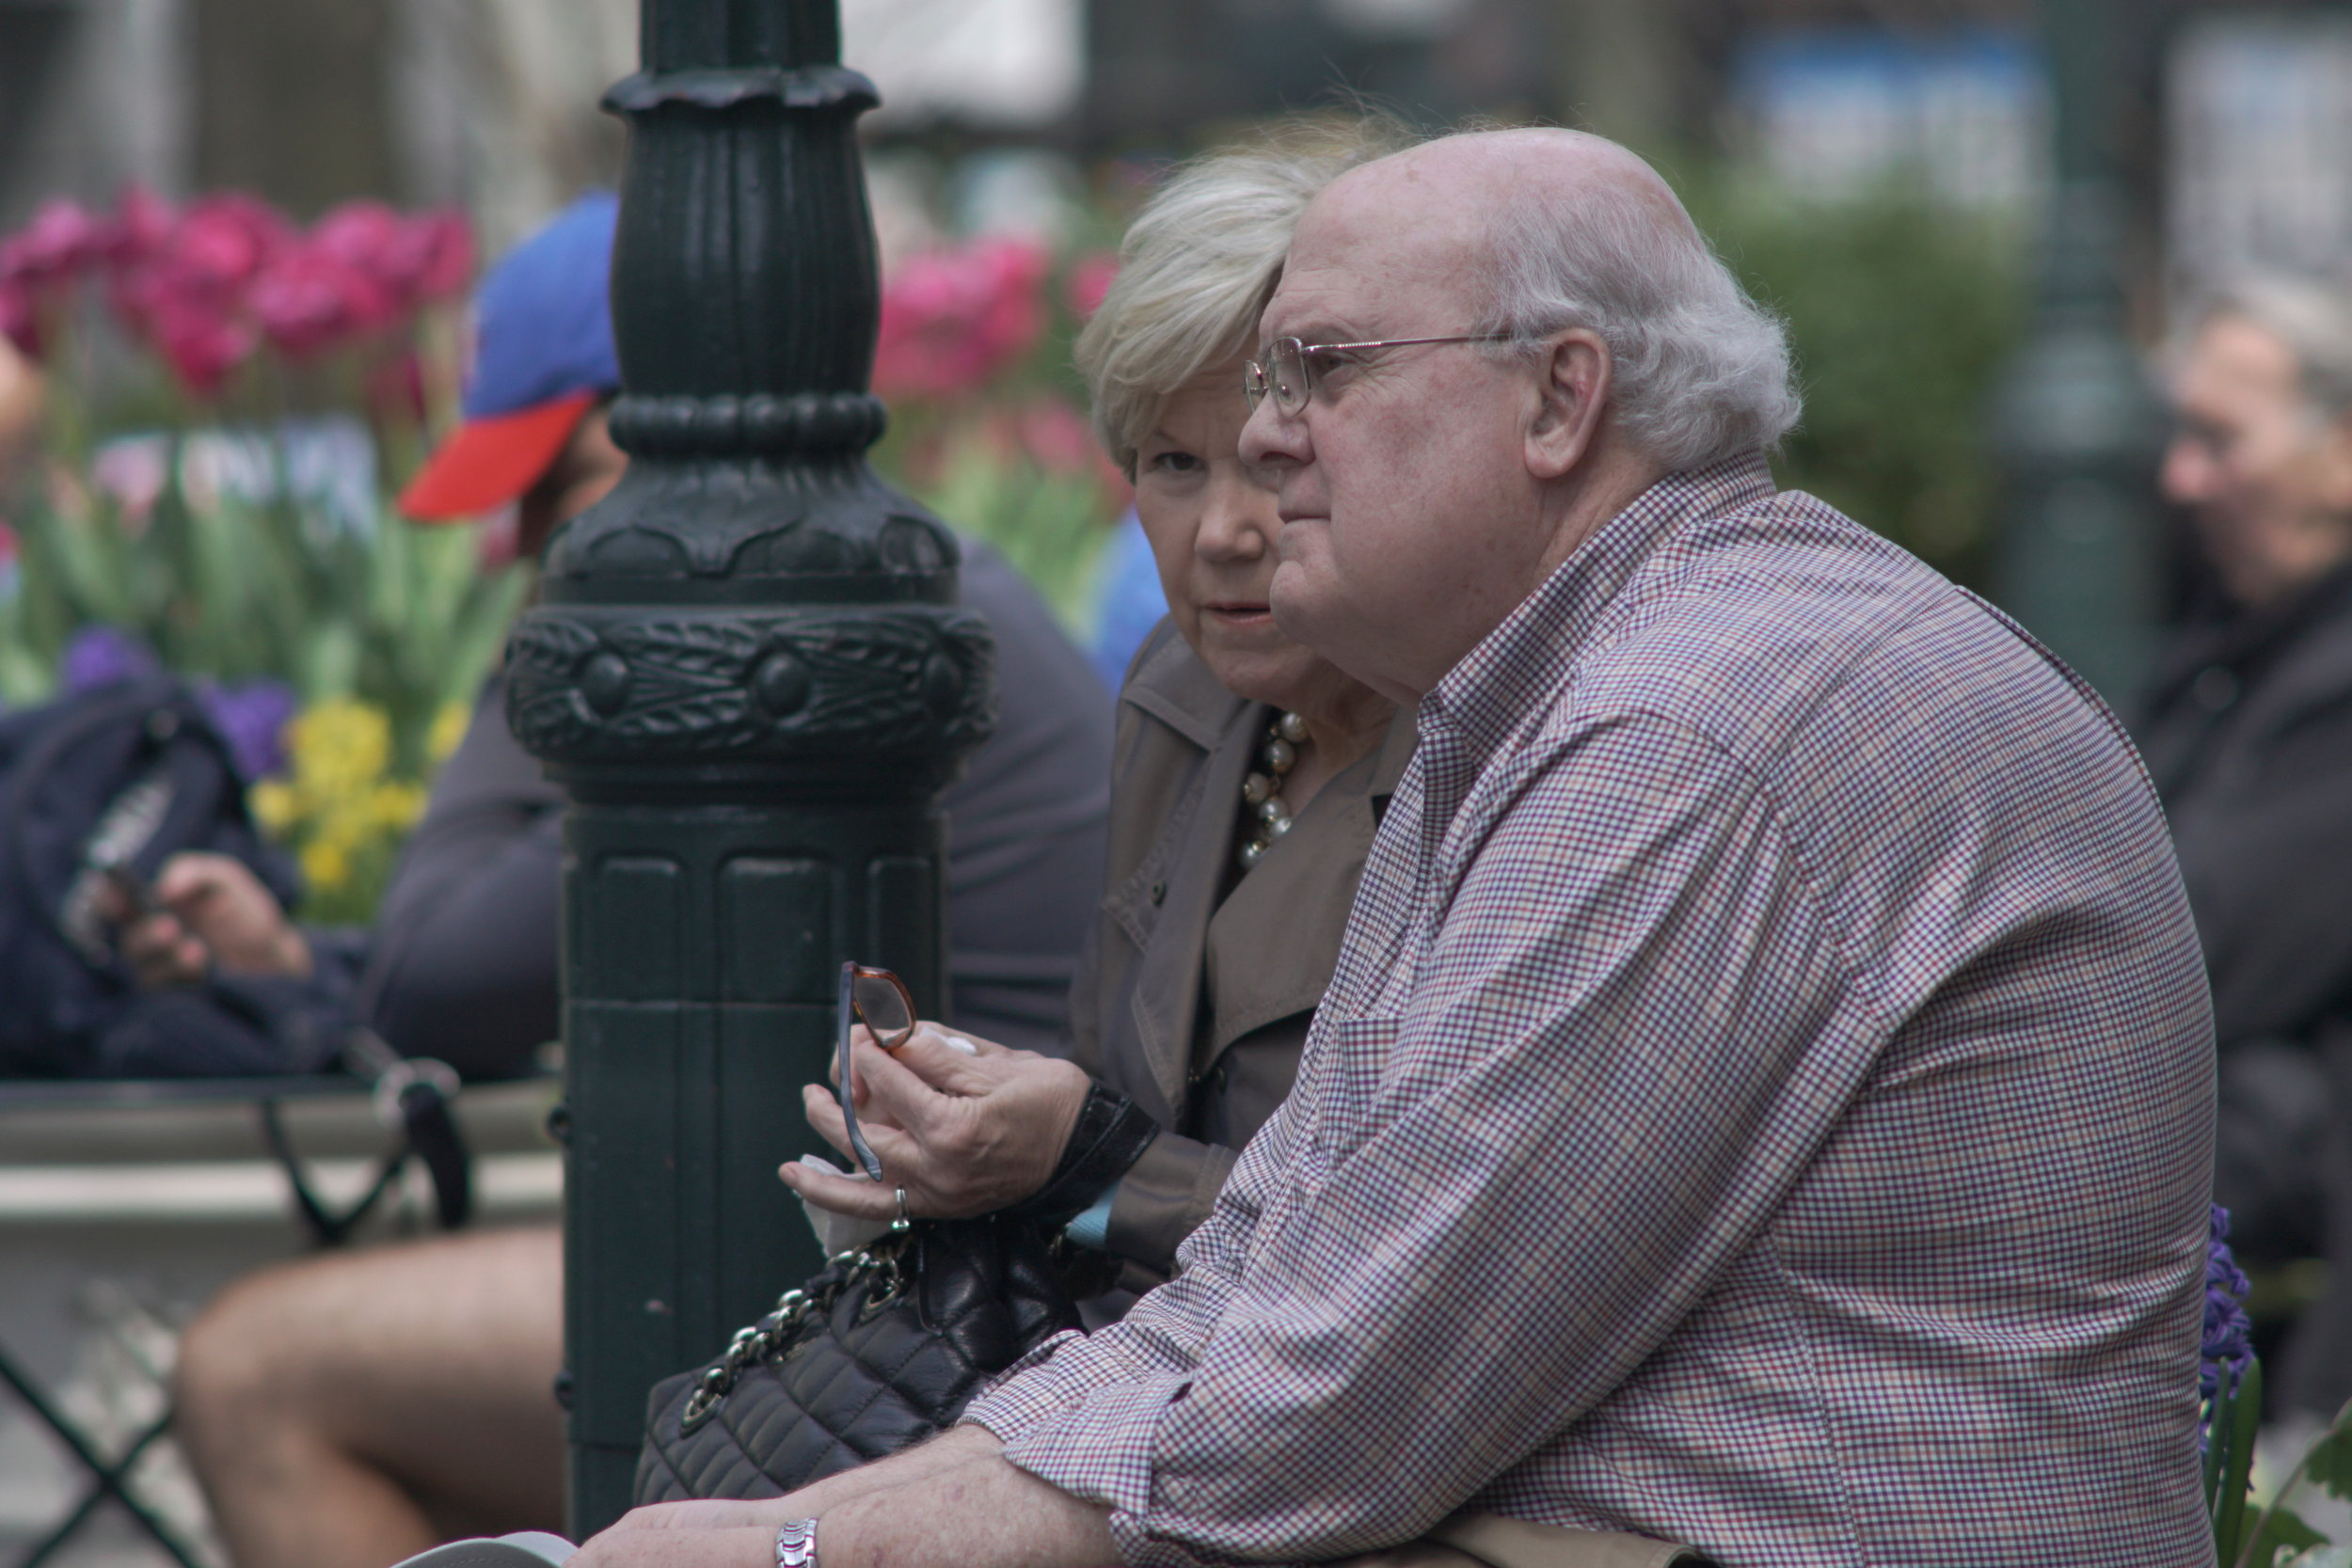 Street Photography with A Telephoto Lens, elderly couple conversing